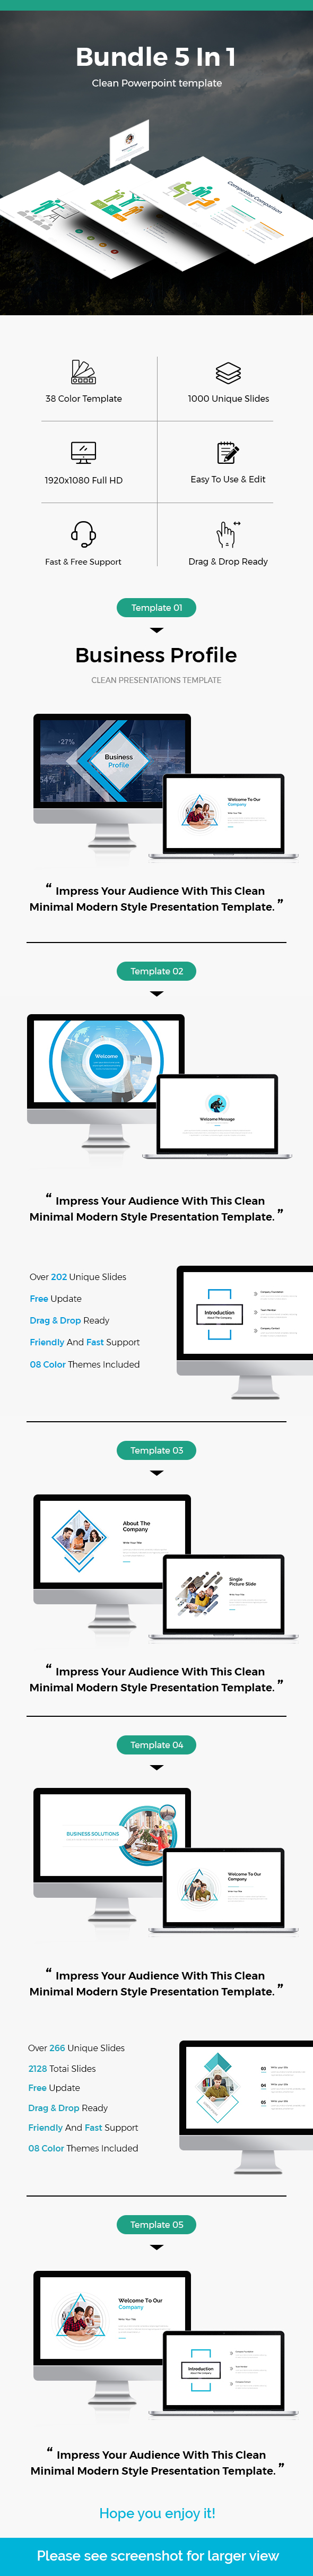 Bundle 5 In 1 Business Powerpoint Template - PowerPoint Templates Presentation Templates